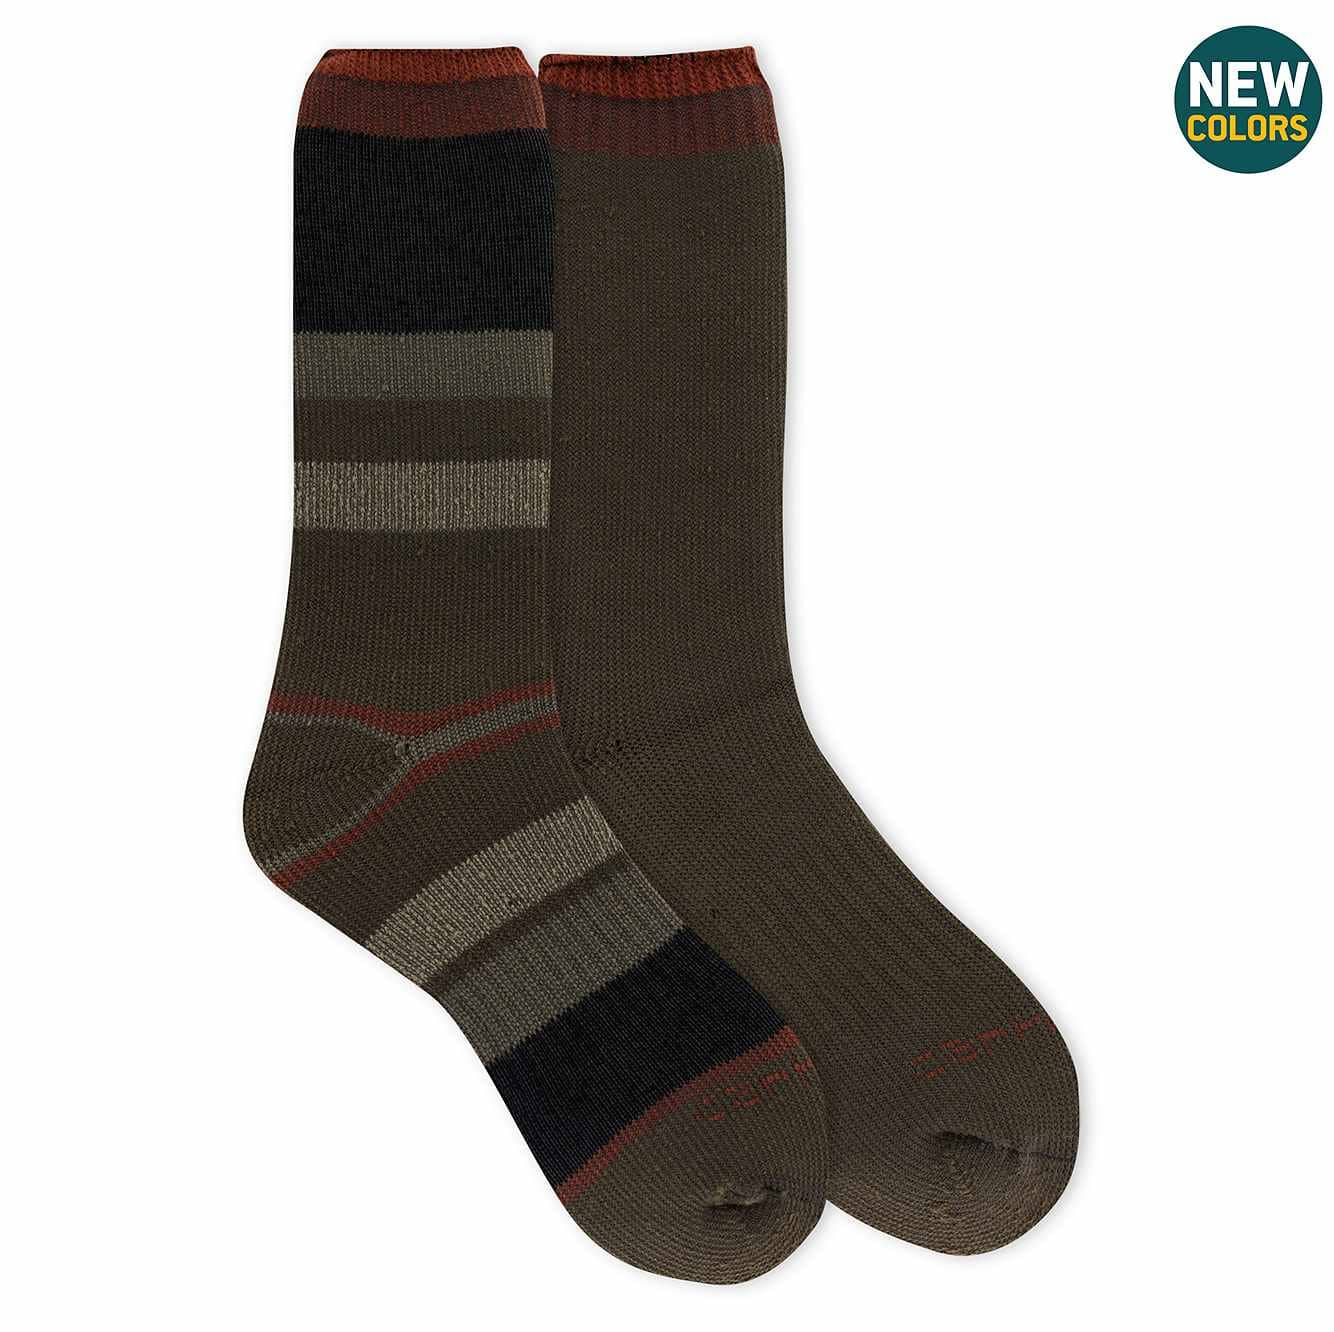 Picture of Arctic Thermal Crew Sock 2 Pack in Brick